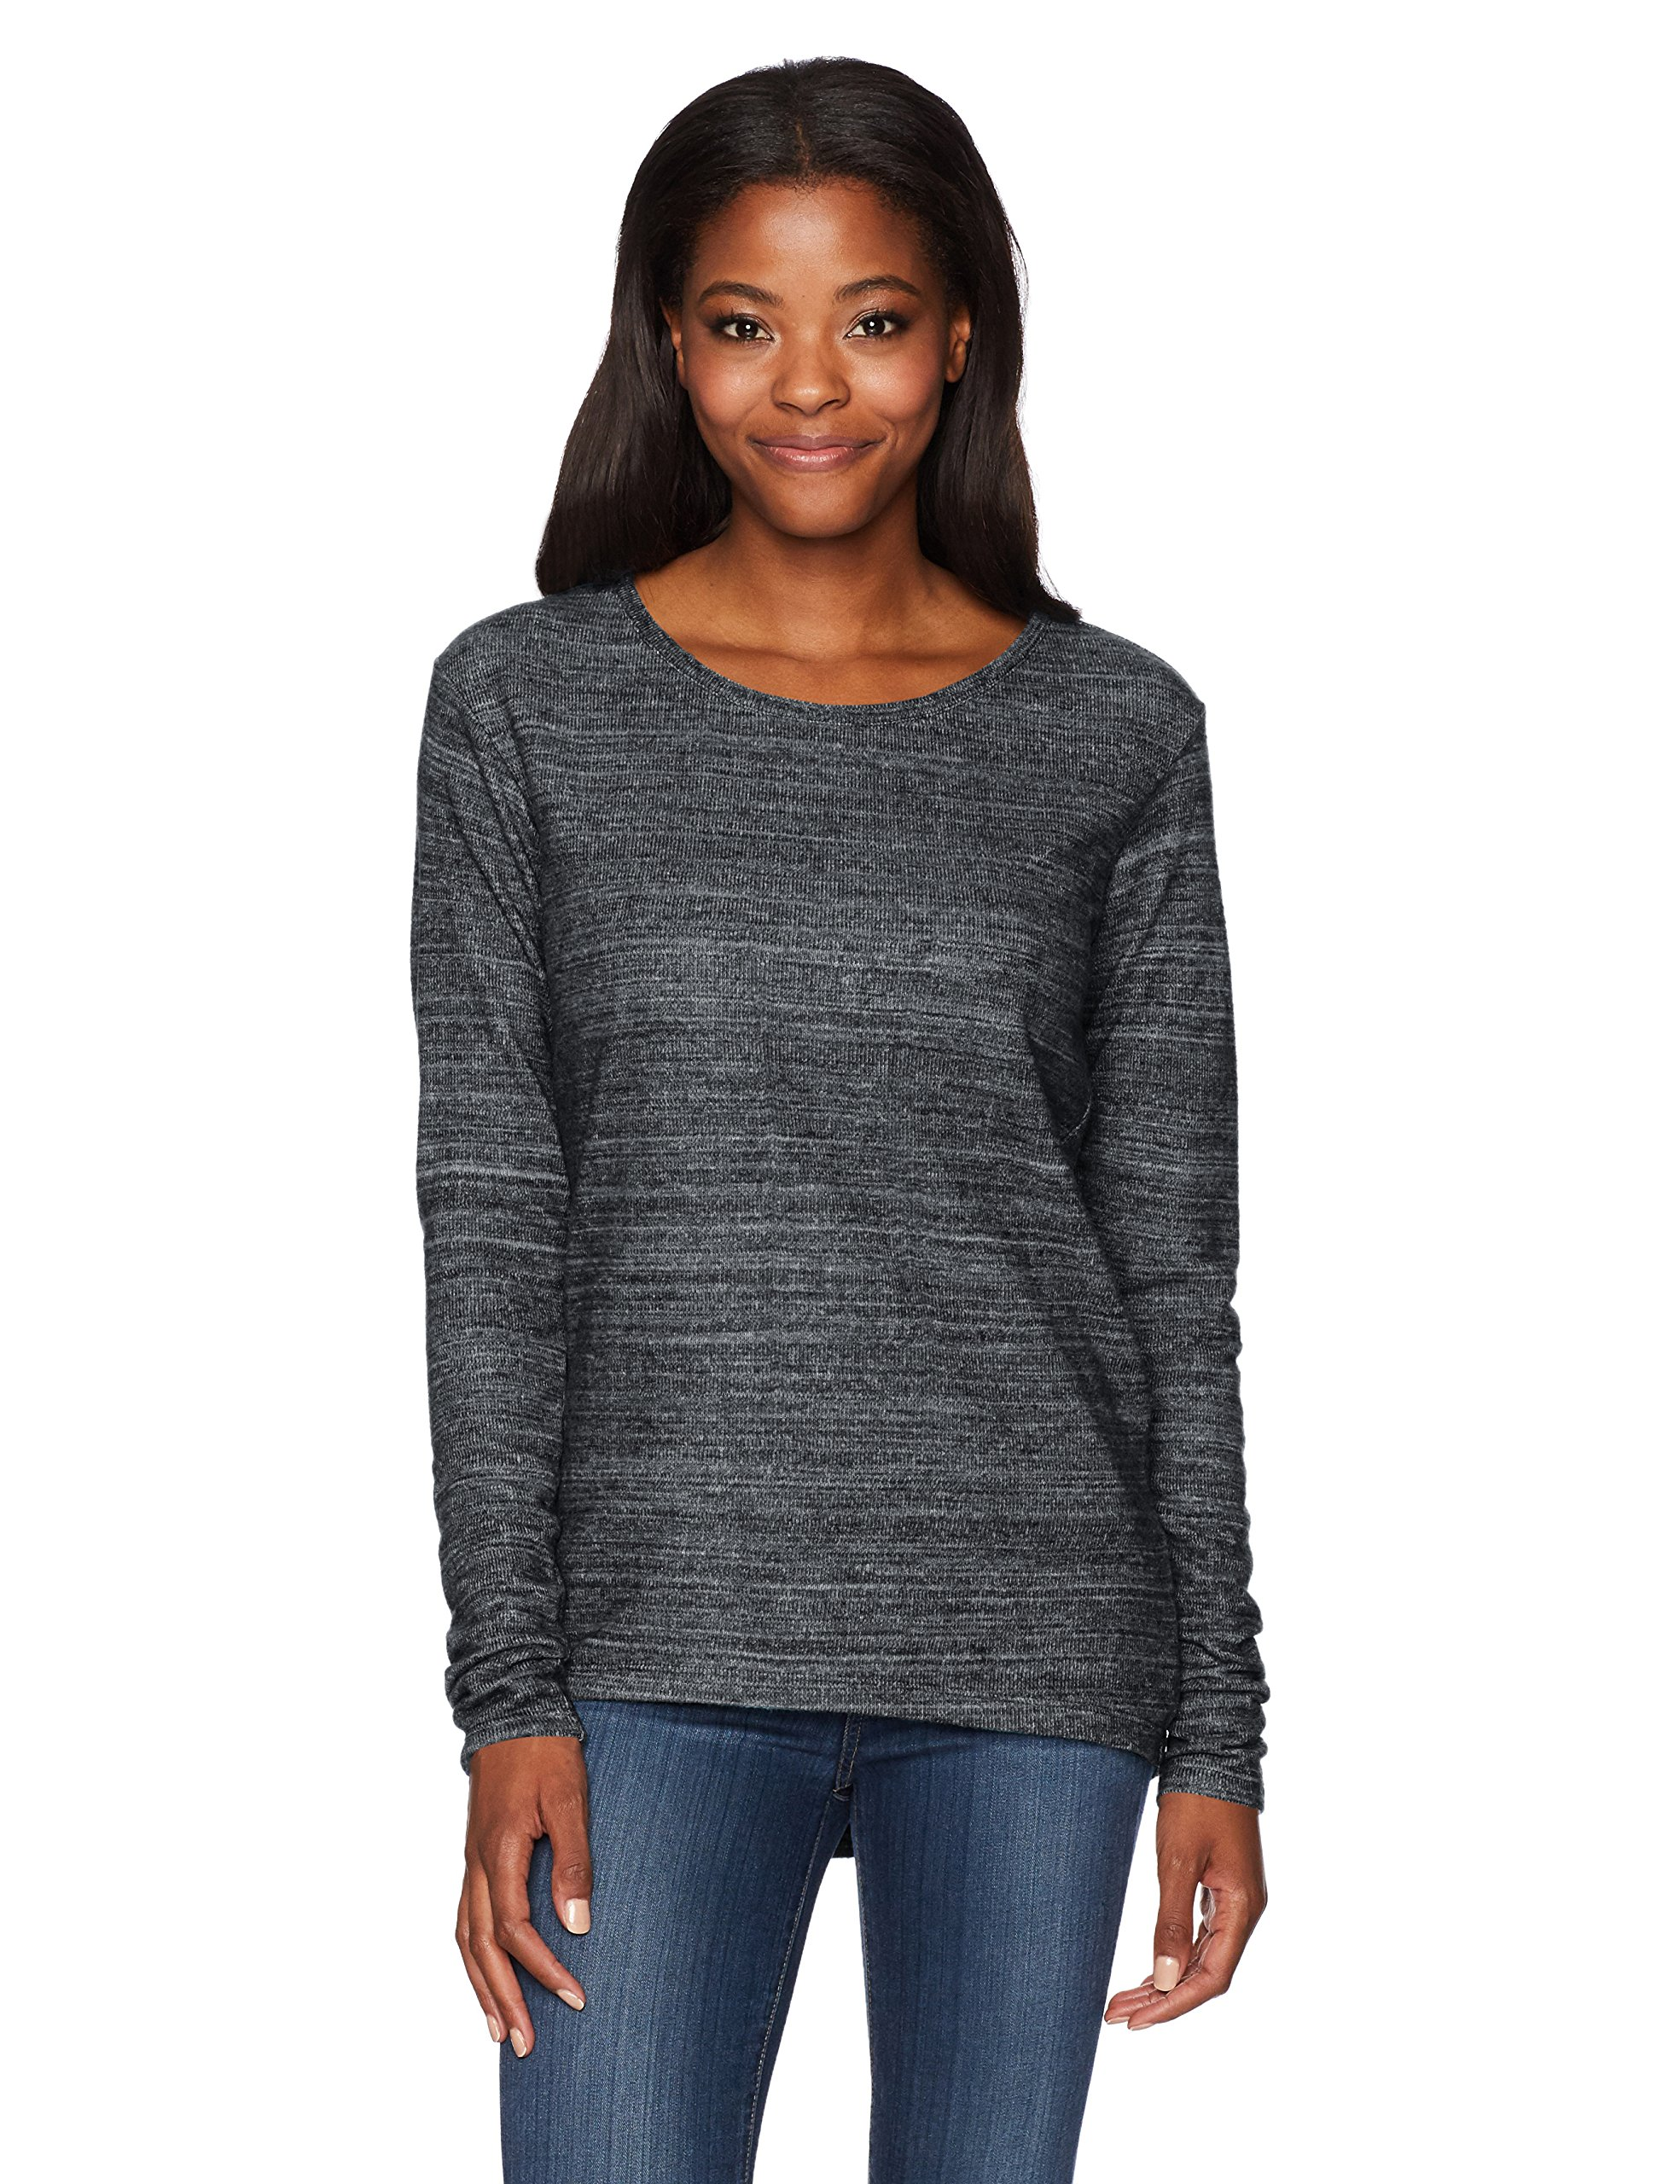 Columbia Women's by The Hearth Sweater, Shark, M